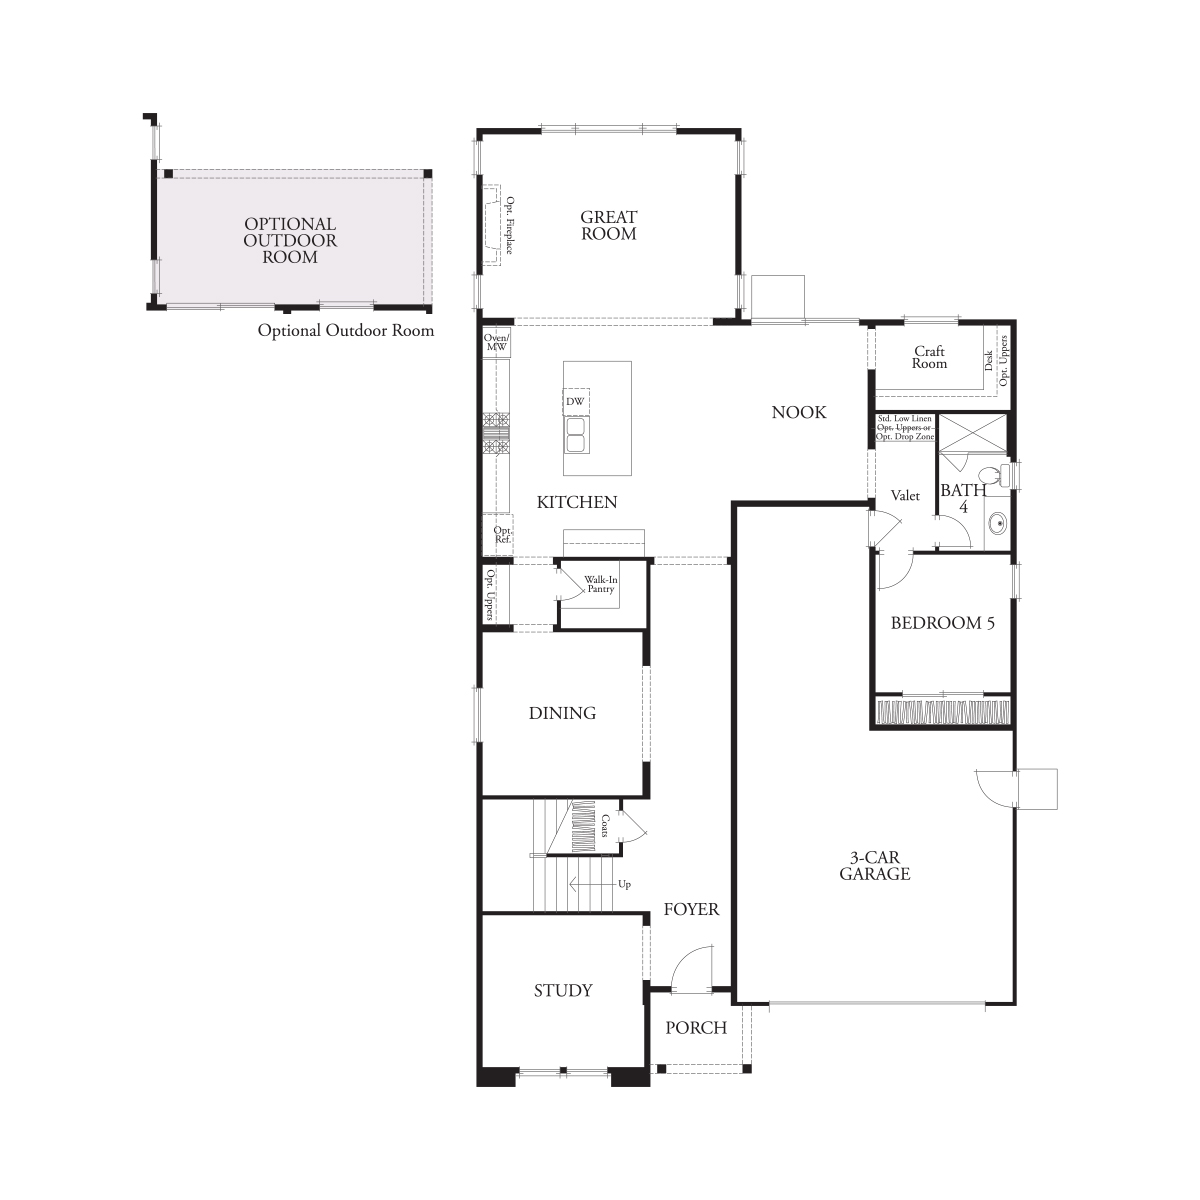 First floor residence 4 floor plan | Laurel at Emerson Ranch in Oakley, CA | Brookfield Residential